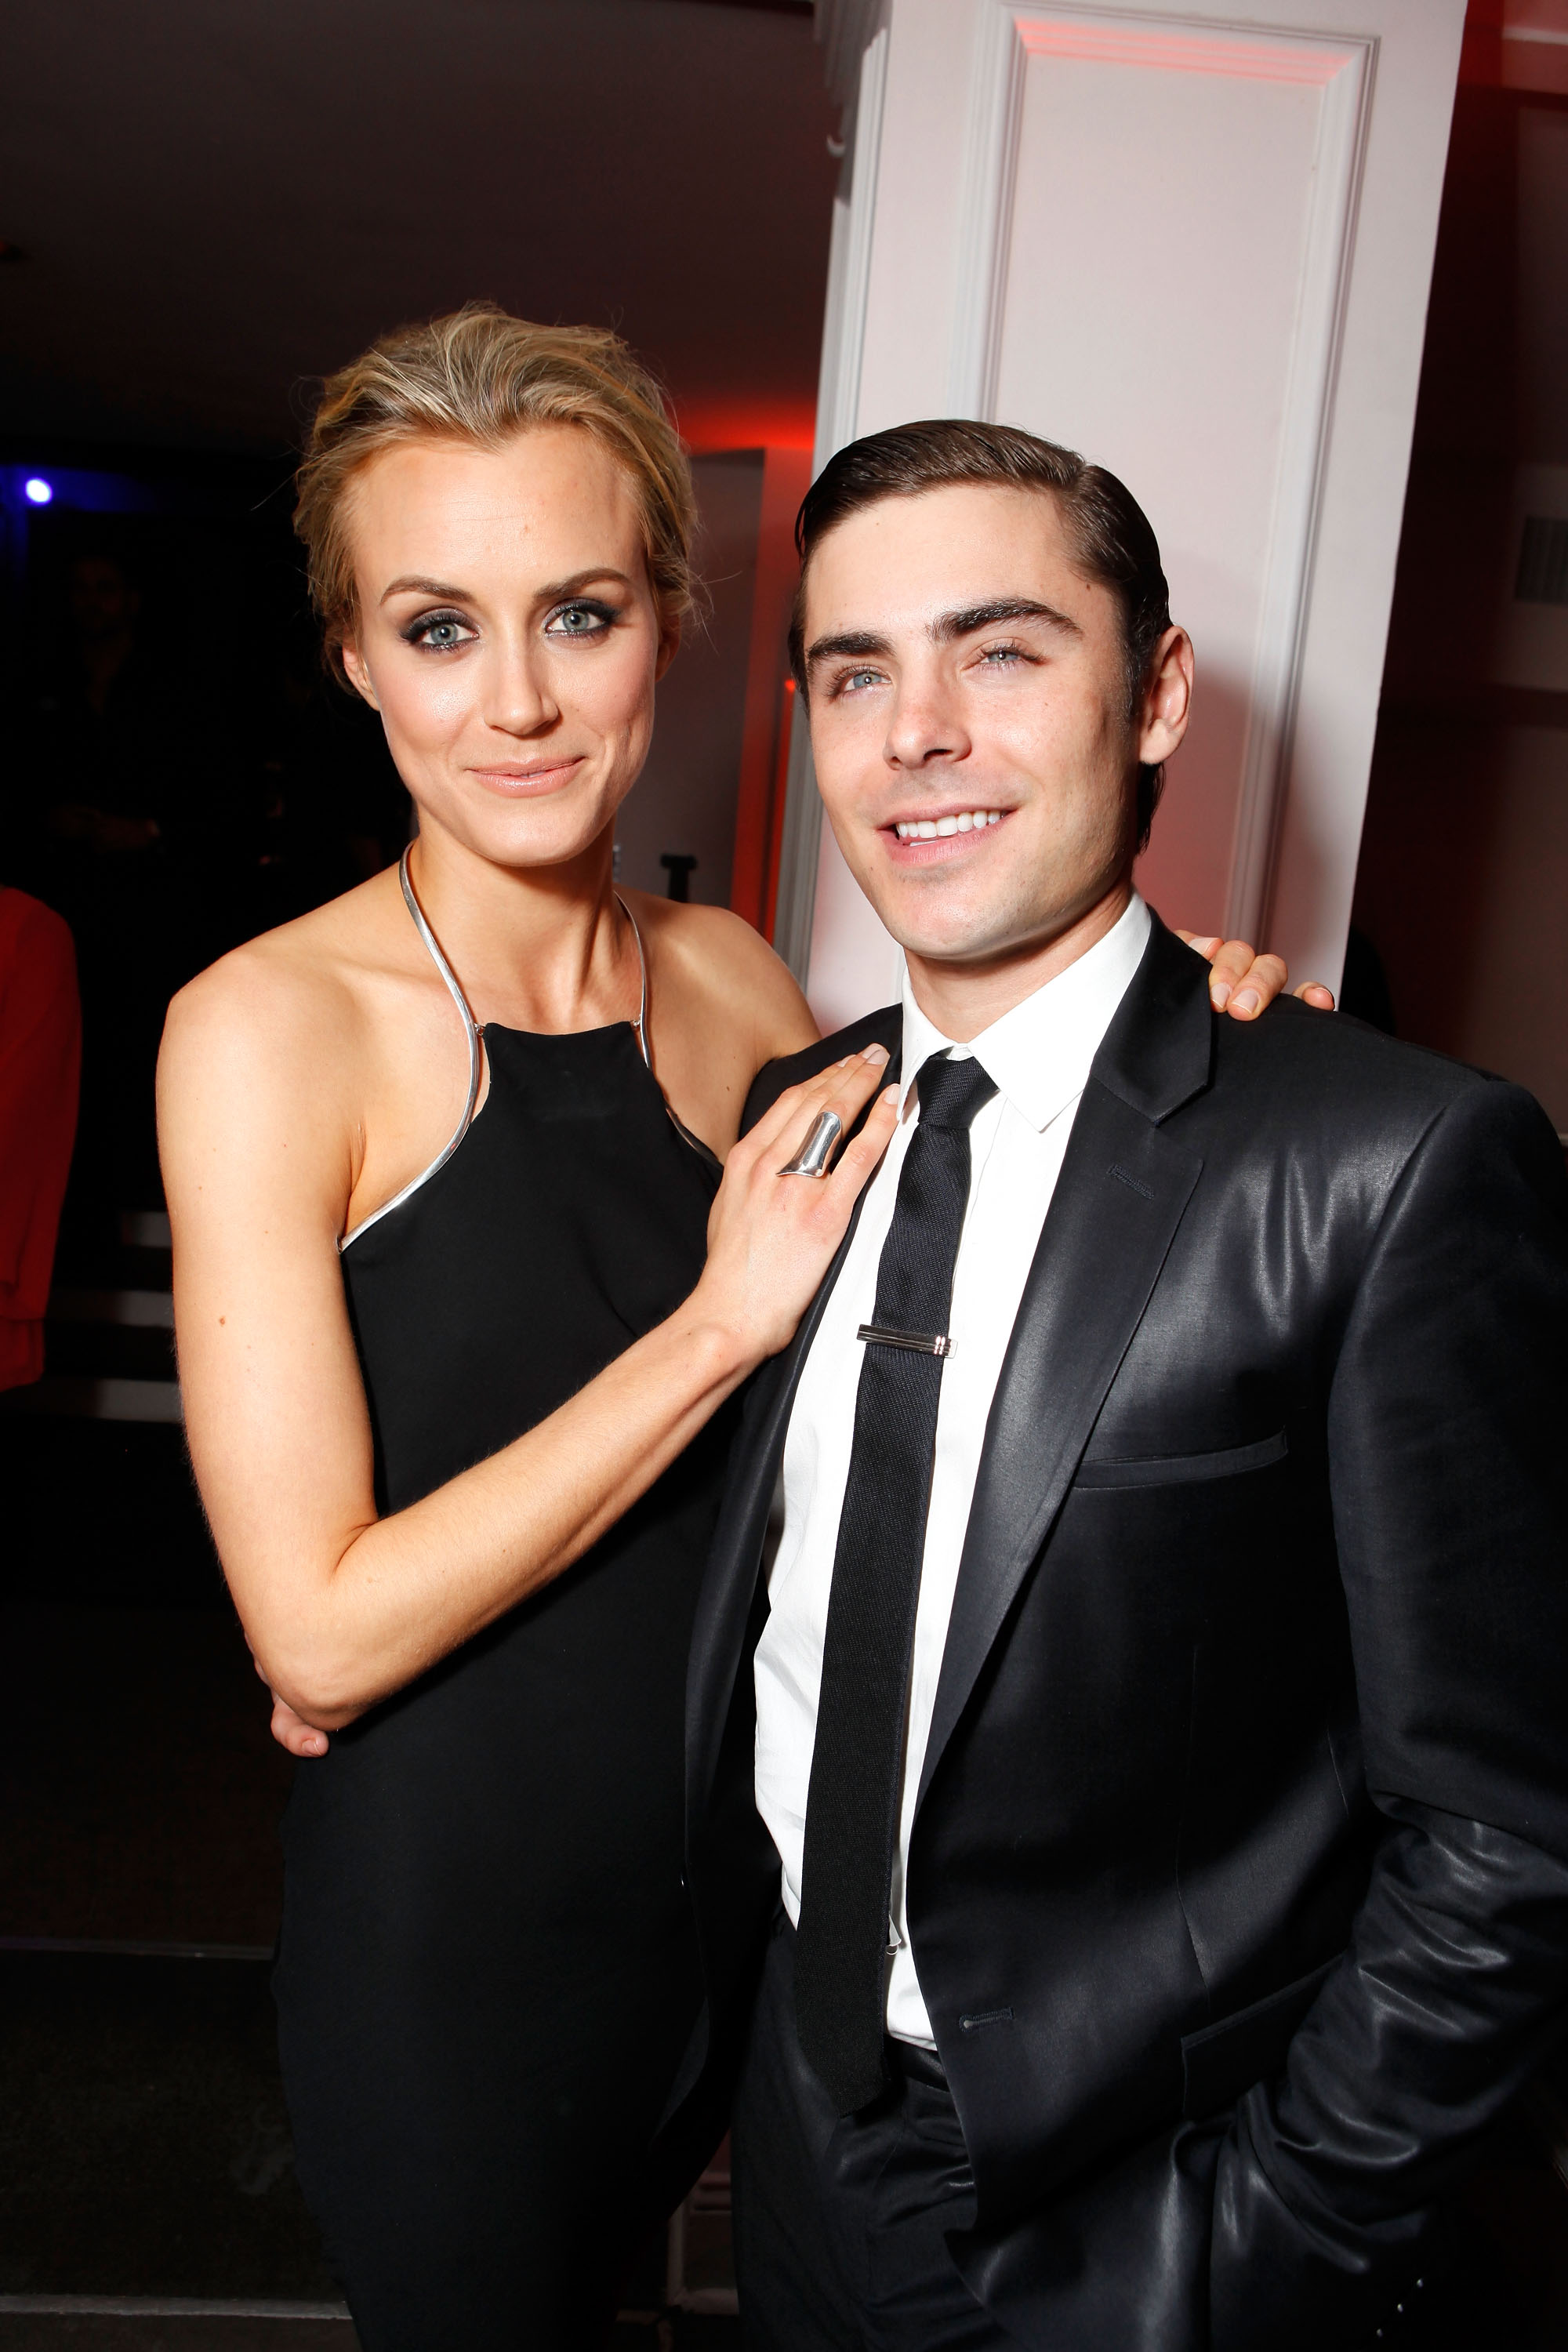 Photo of Taylor Schilling & her friend, actor  Zac Efron